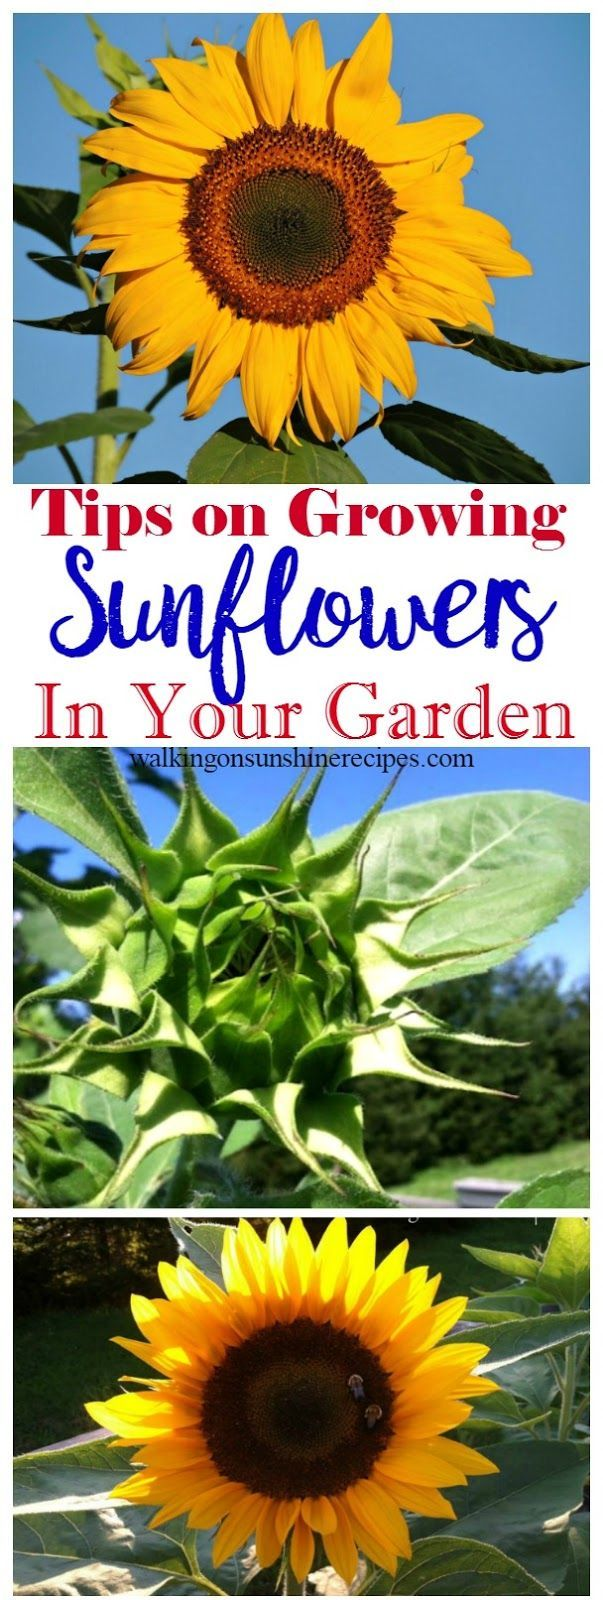 Sunflower Garden Ideas 7 sunflowers we love 5 Tips For Growing Sunflowers In Your Garden Is This Weeks Thursdays Tip From Walking On